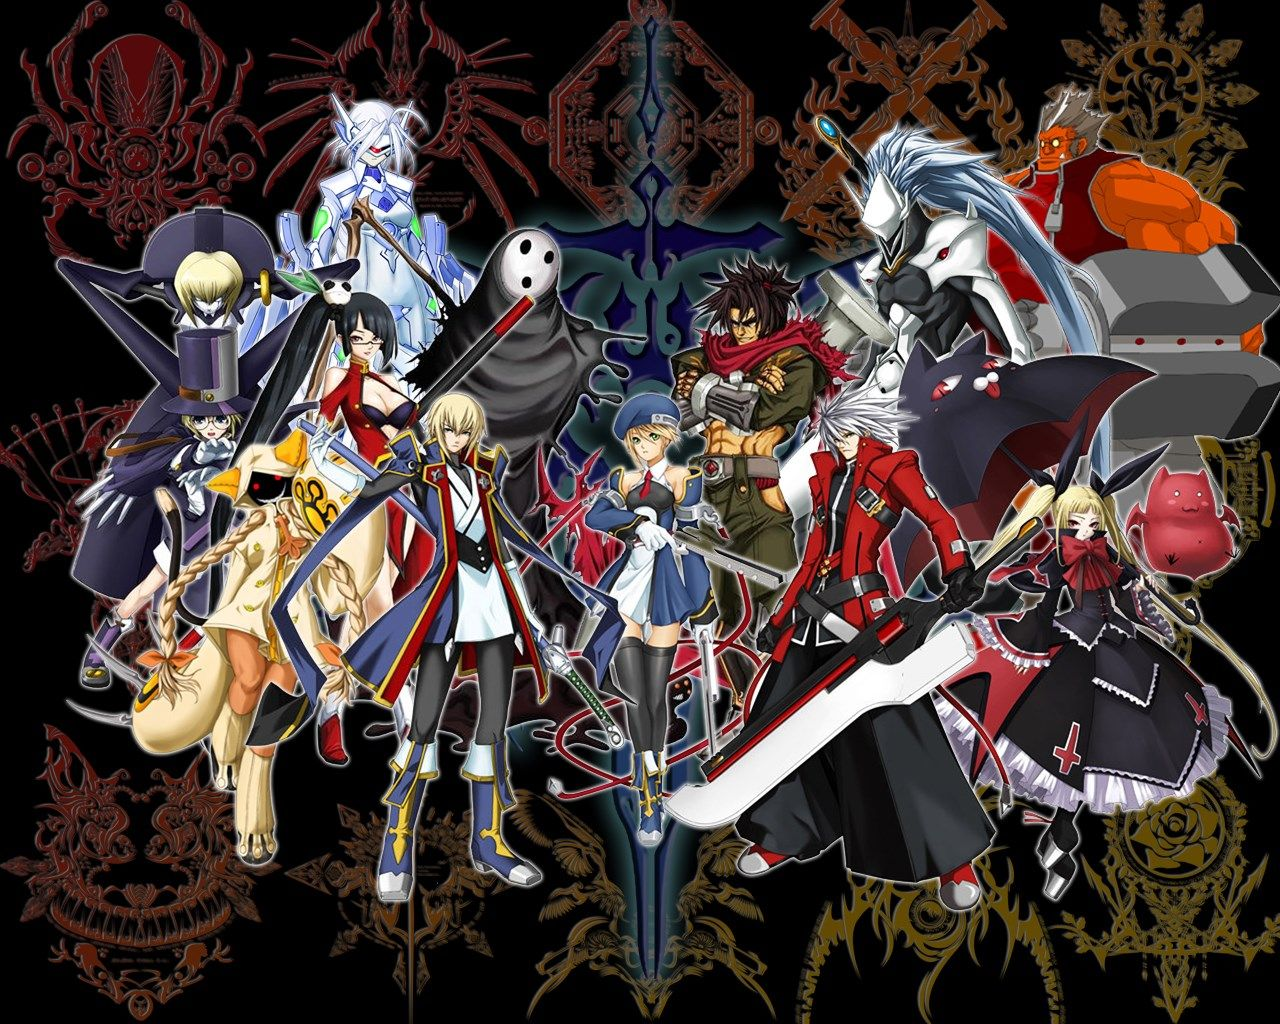 1280x1024 Free blazblue Romantic anime, Best action